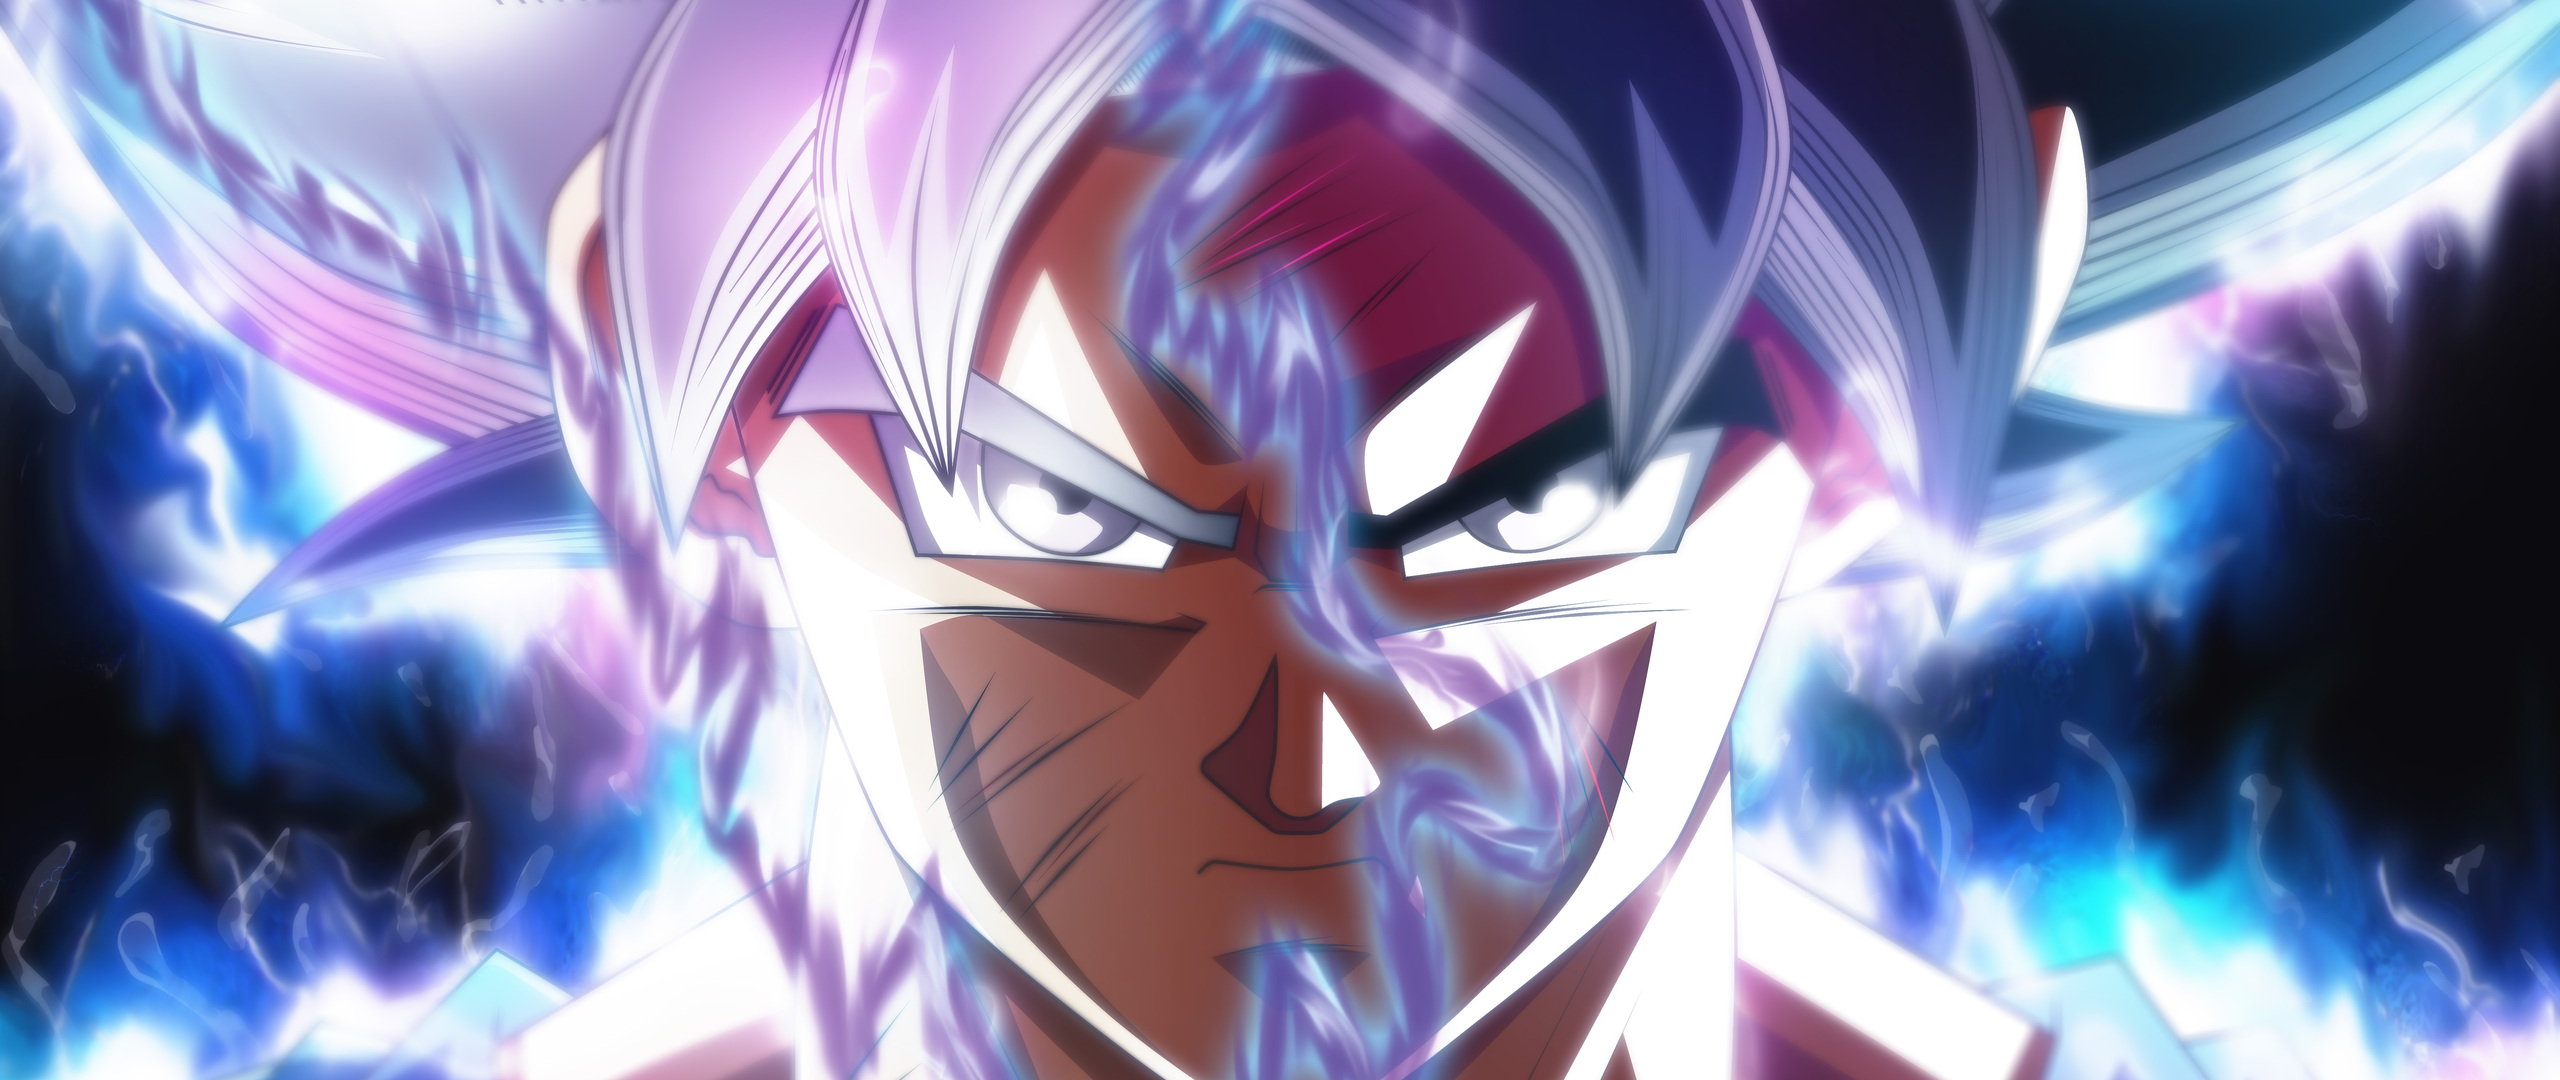 Goku Ultra Instinct Wallpaper Hd: 2560x1080 Goku Ultra Instinct Transformation 2560x1080